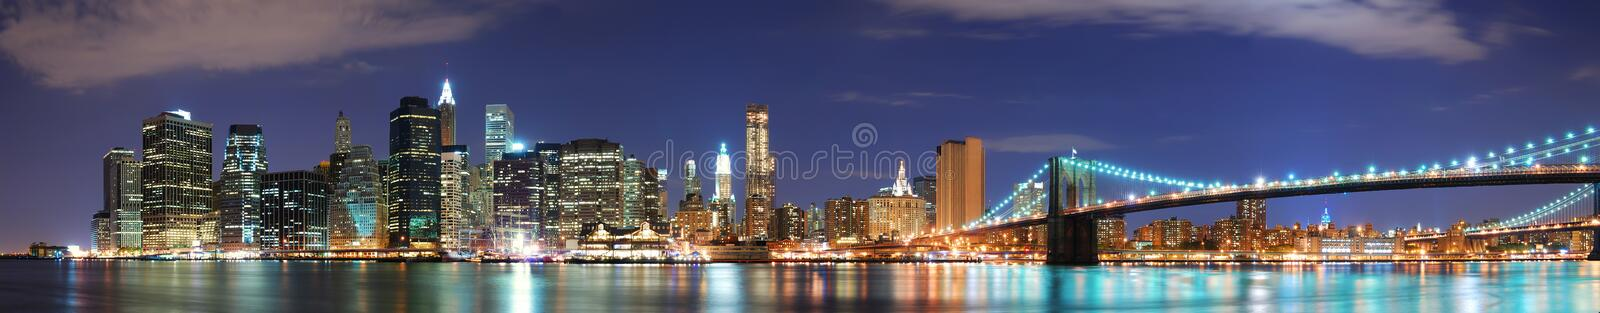 Skylinepanorama New- York Citymanhattan stockfotografie